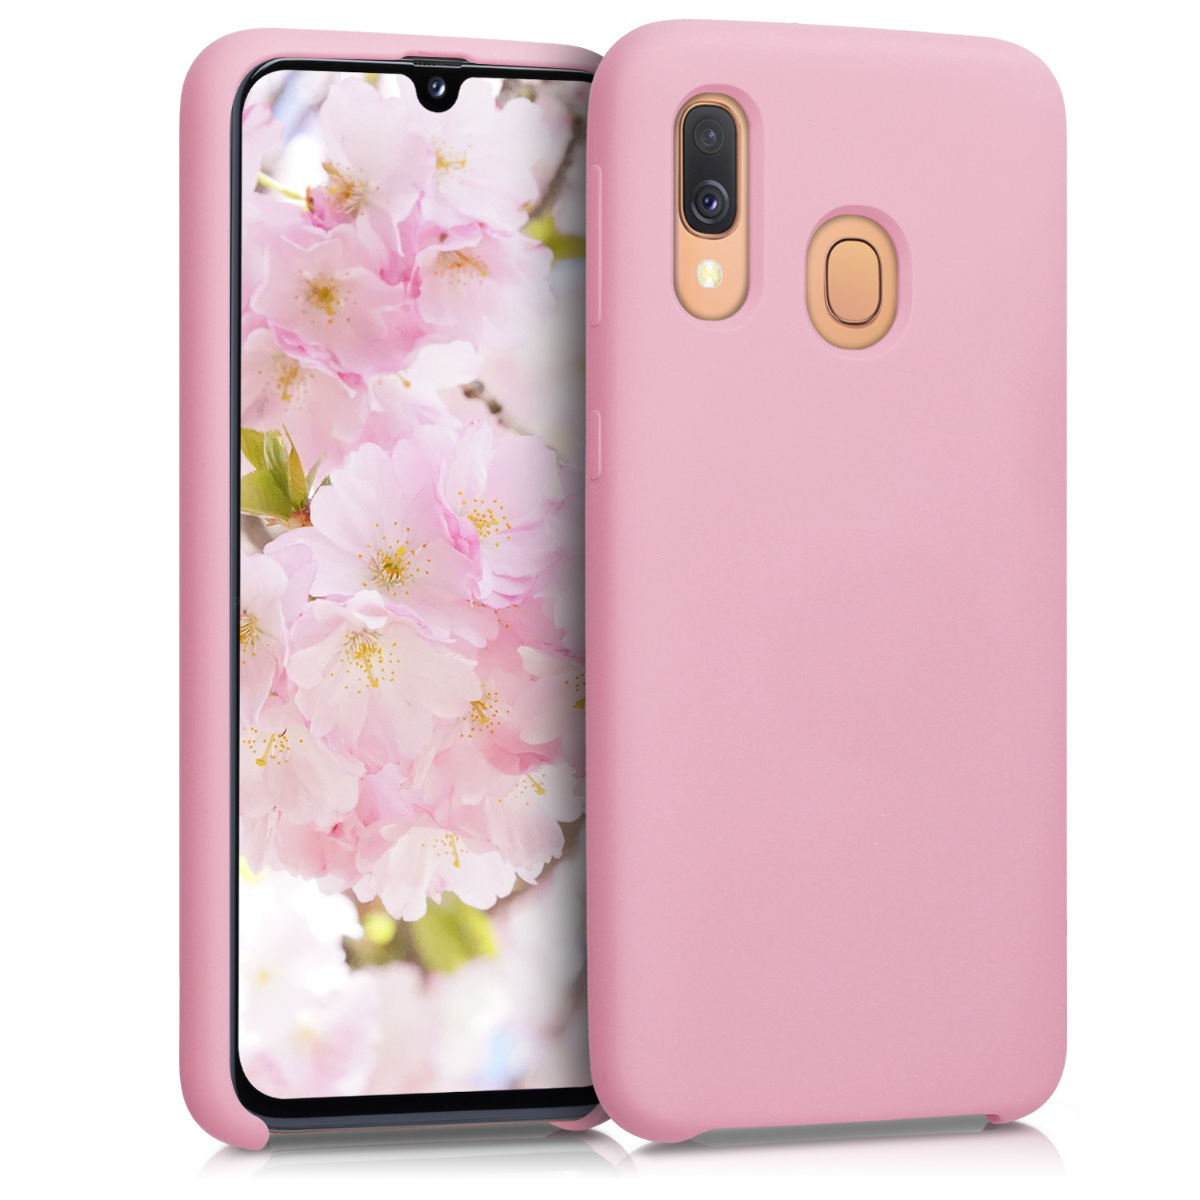 KW Θήκη Σιλικόνης Samsung Galaxy A40 - Soft Flexible Rubber - Rose Gold Matte (49091.89)